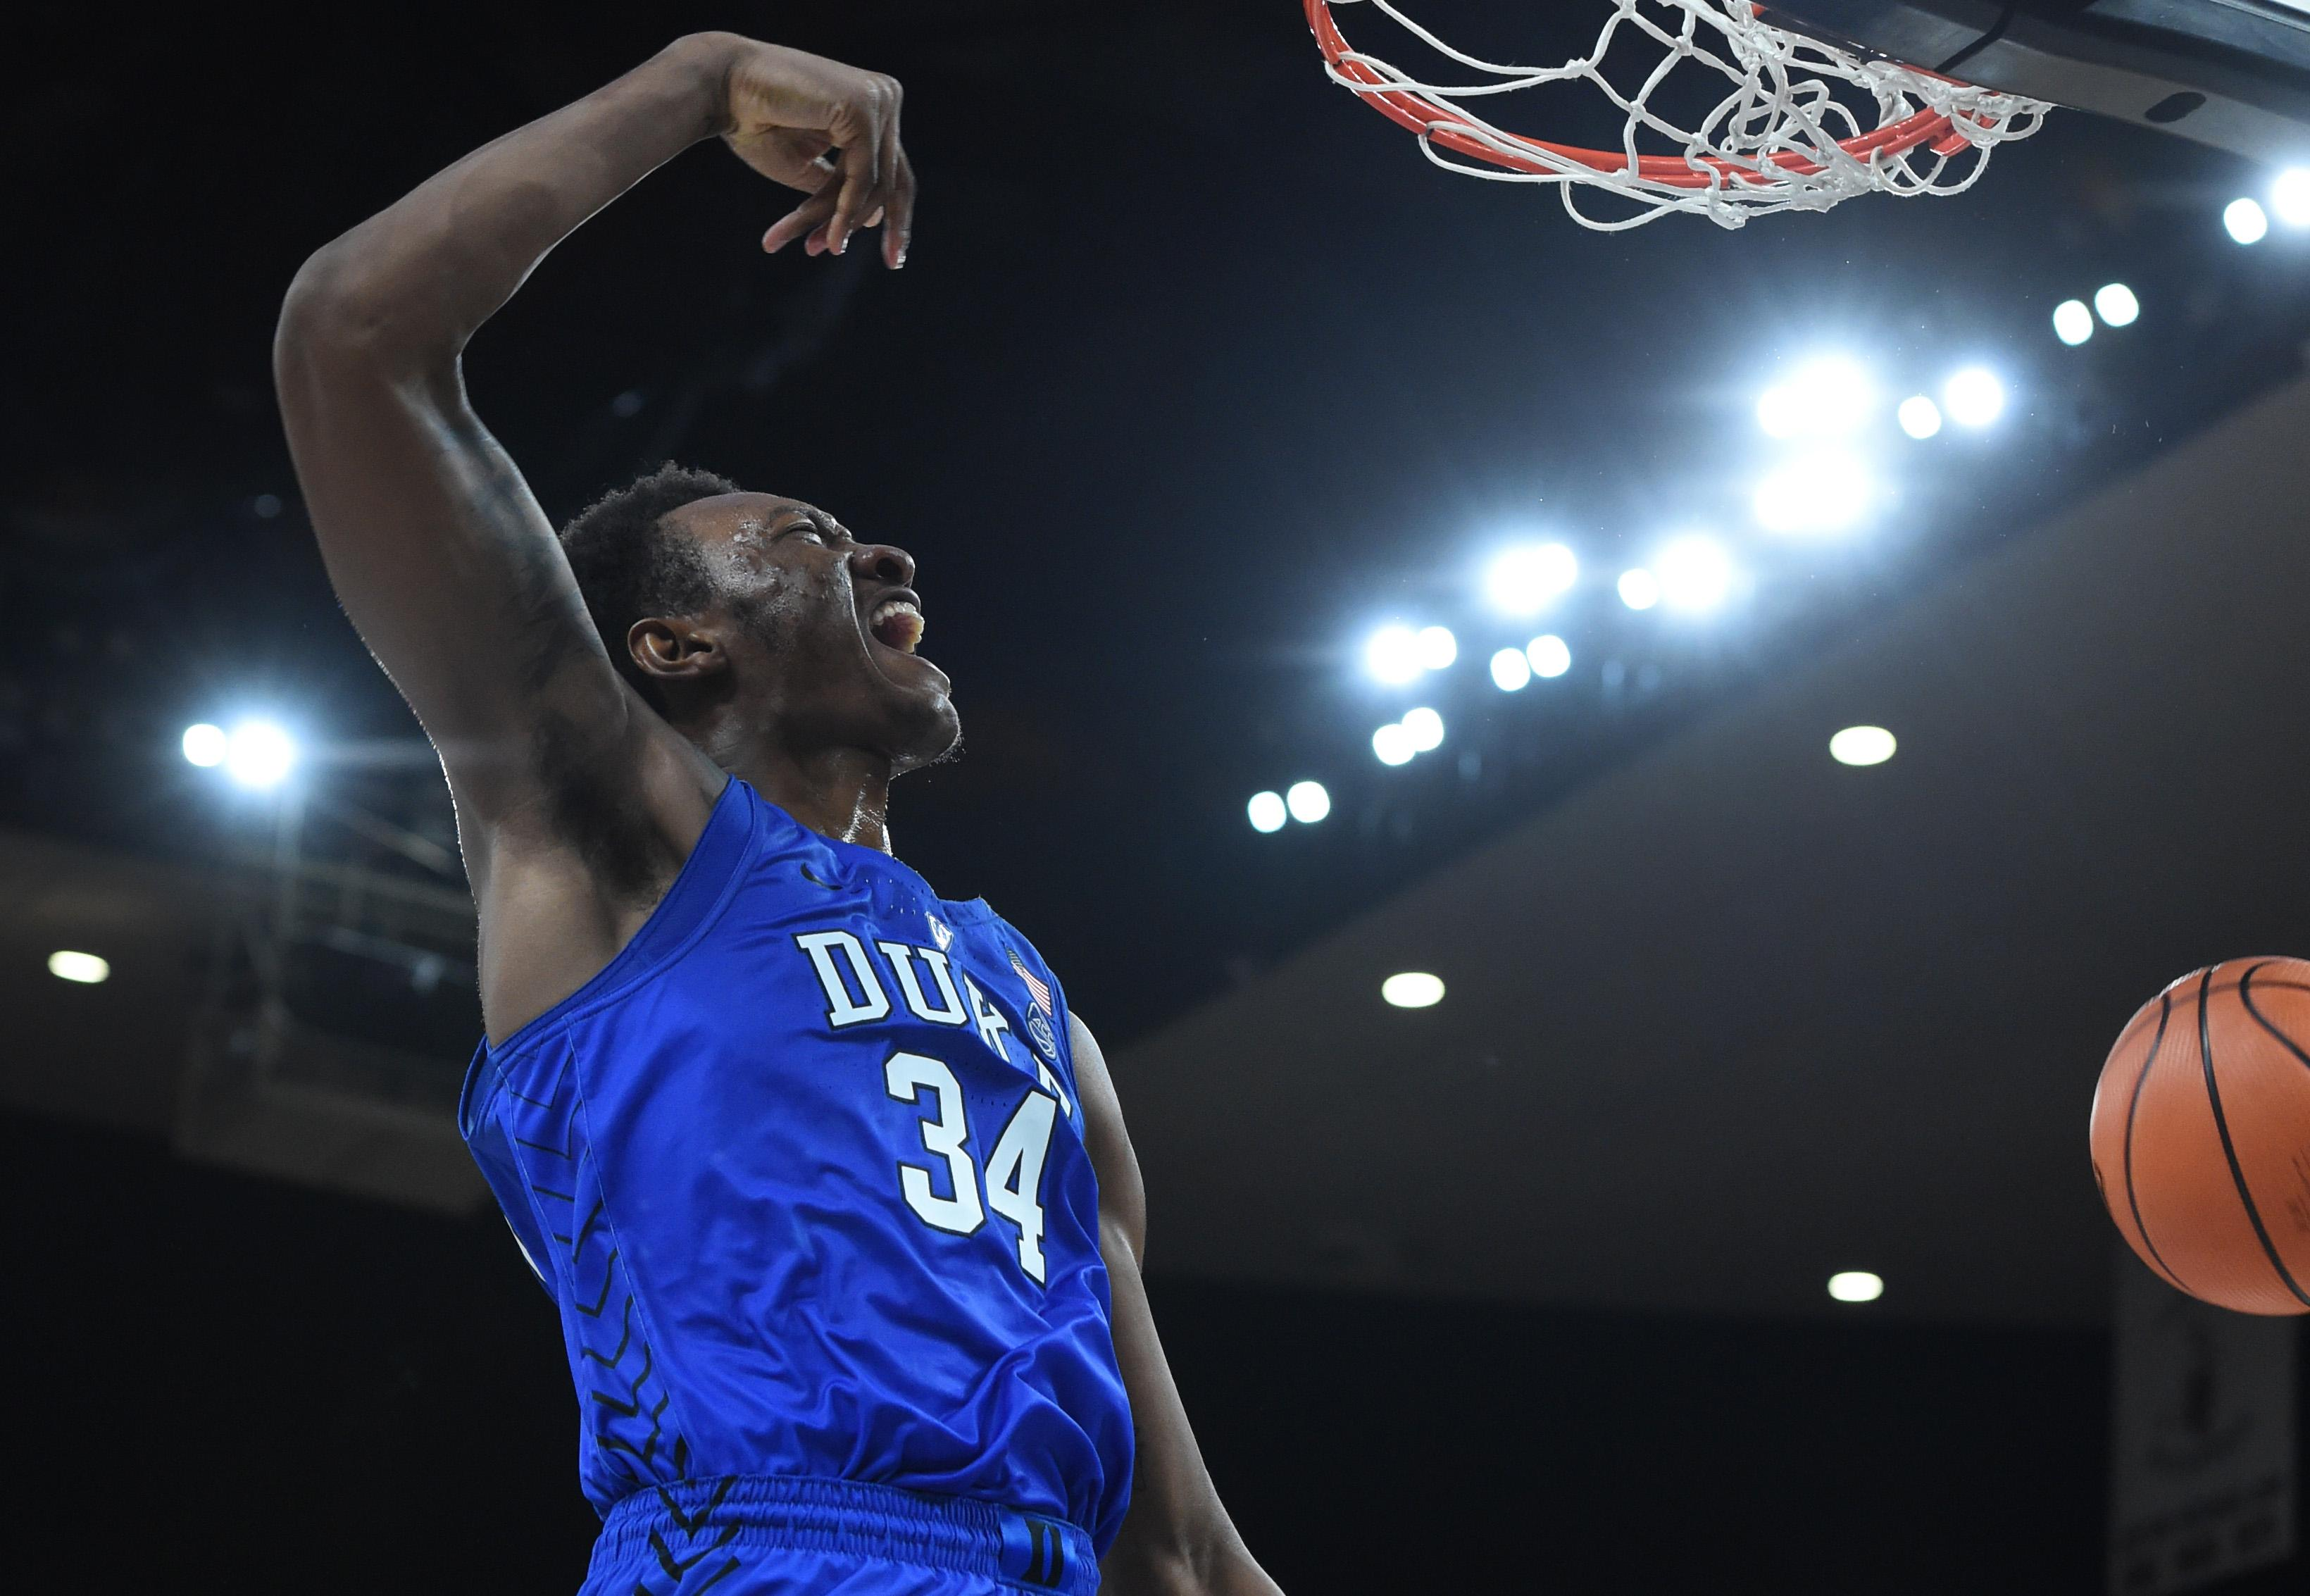 Former Duke forward Wendell Carter's mom compares NCAA rules to slavery